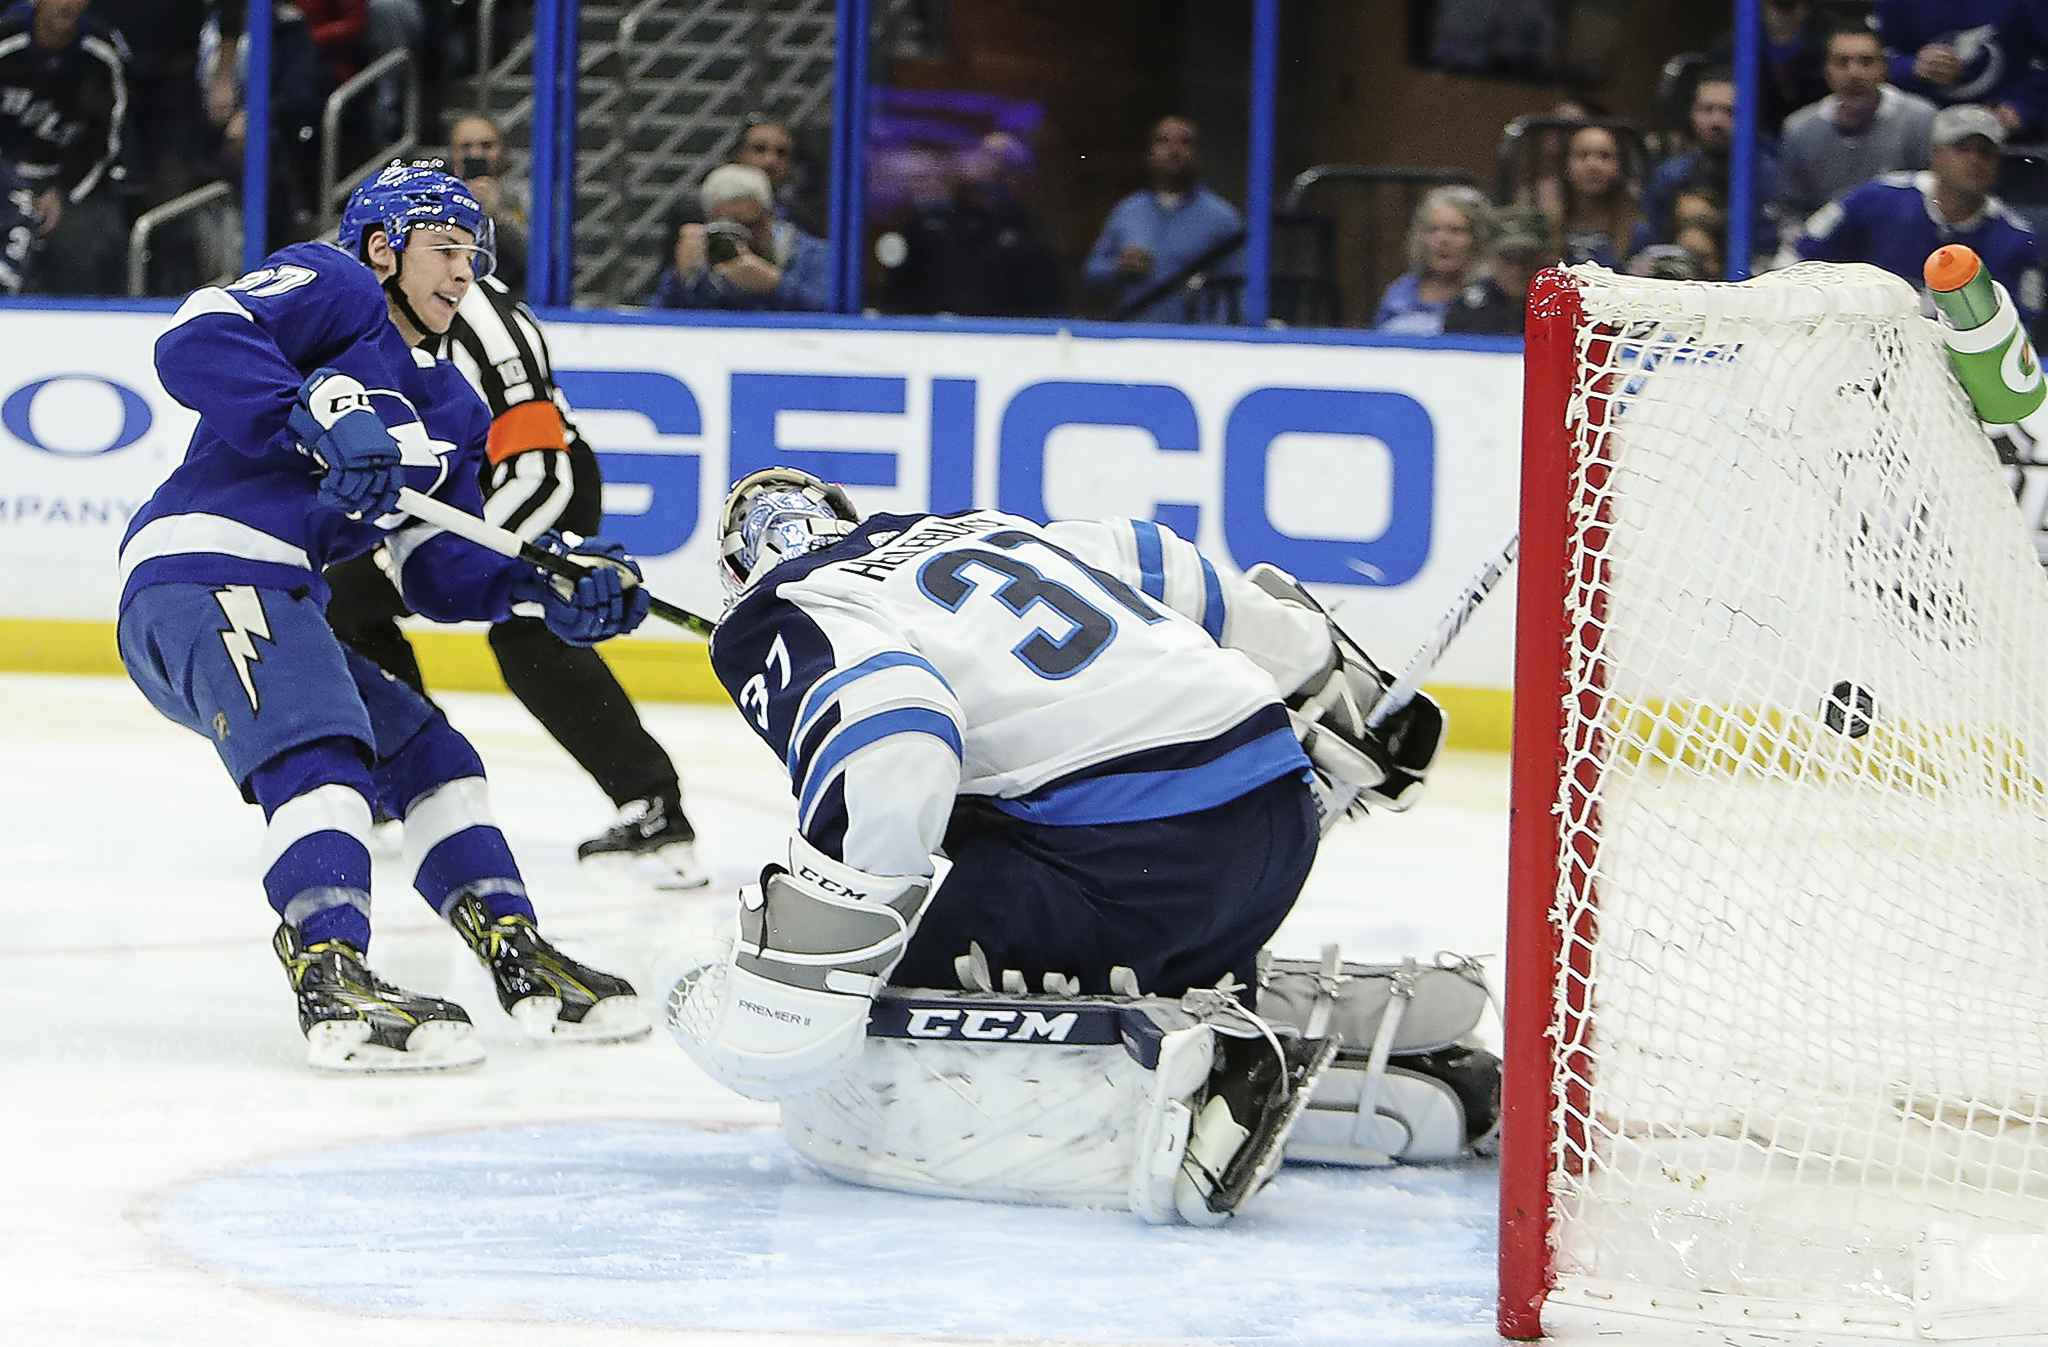 The Tampa Bay Lightning's Yanni Gourde beats Winnipeg Jets goaltender Connor Hellebuyck in the first period.